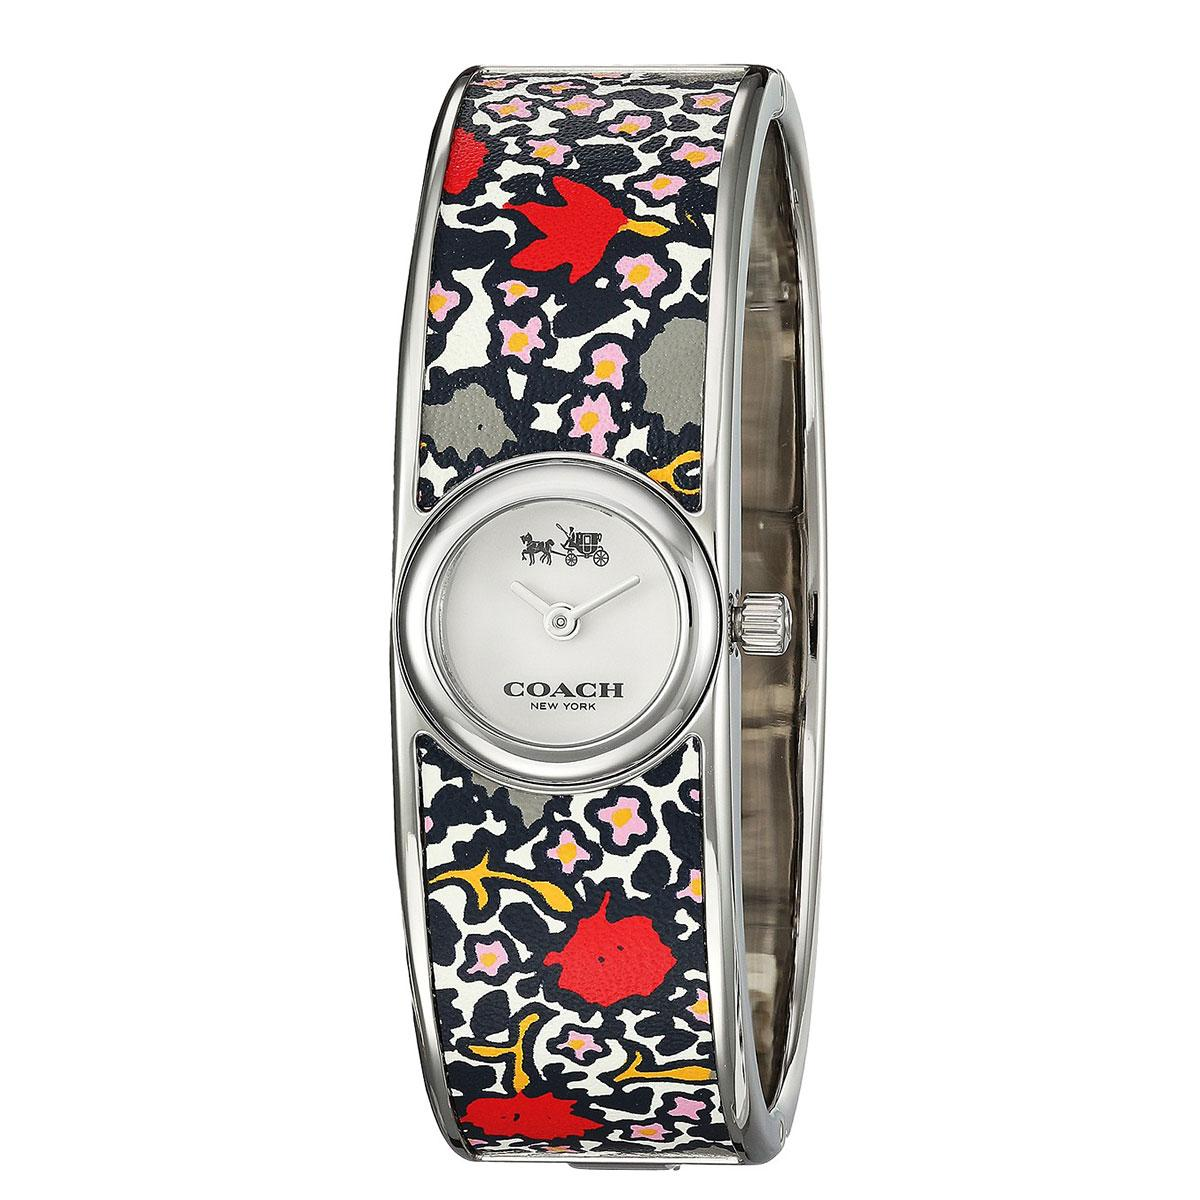 Price Coach Watch Scout Multicolored Stainless Steel Case Stainless Steel Bracelet Ladies 14502731 Coach Online